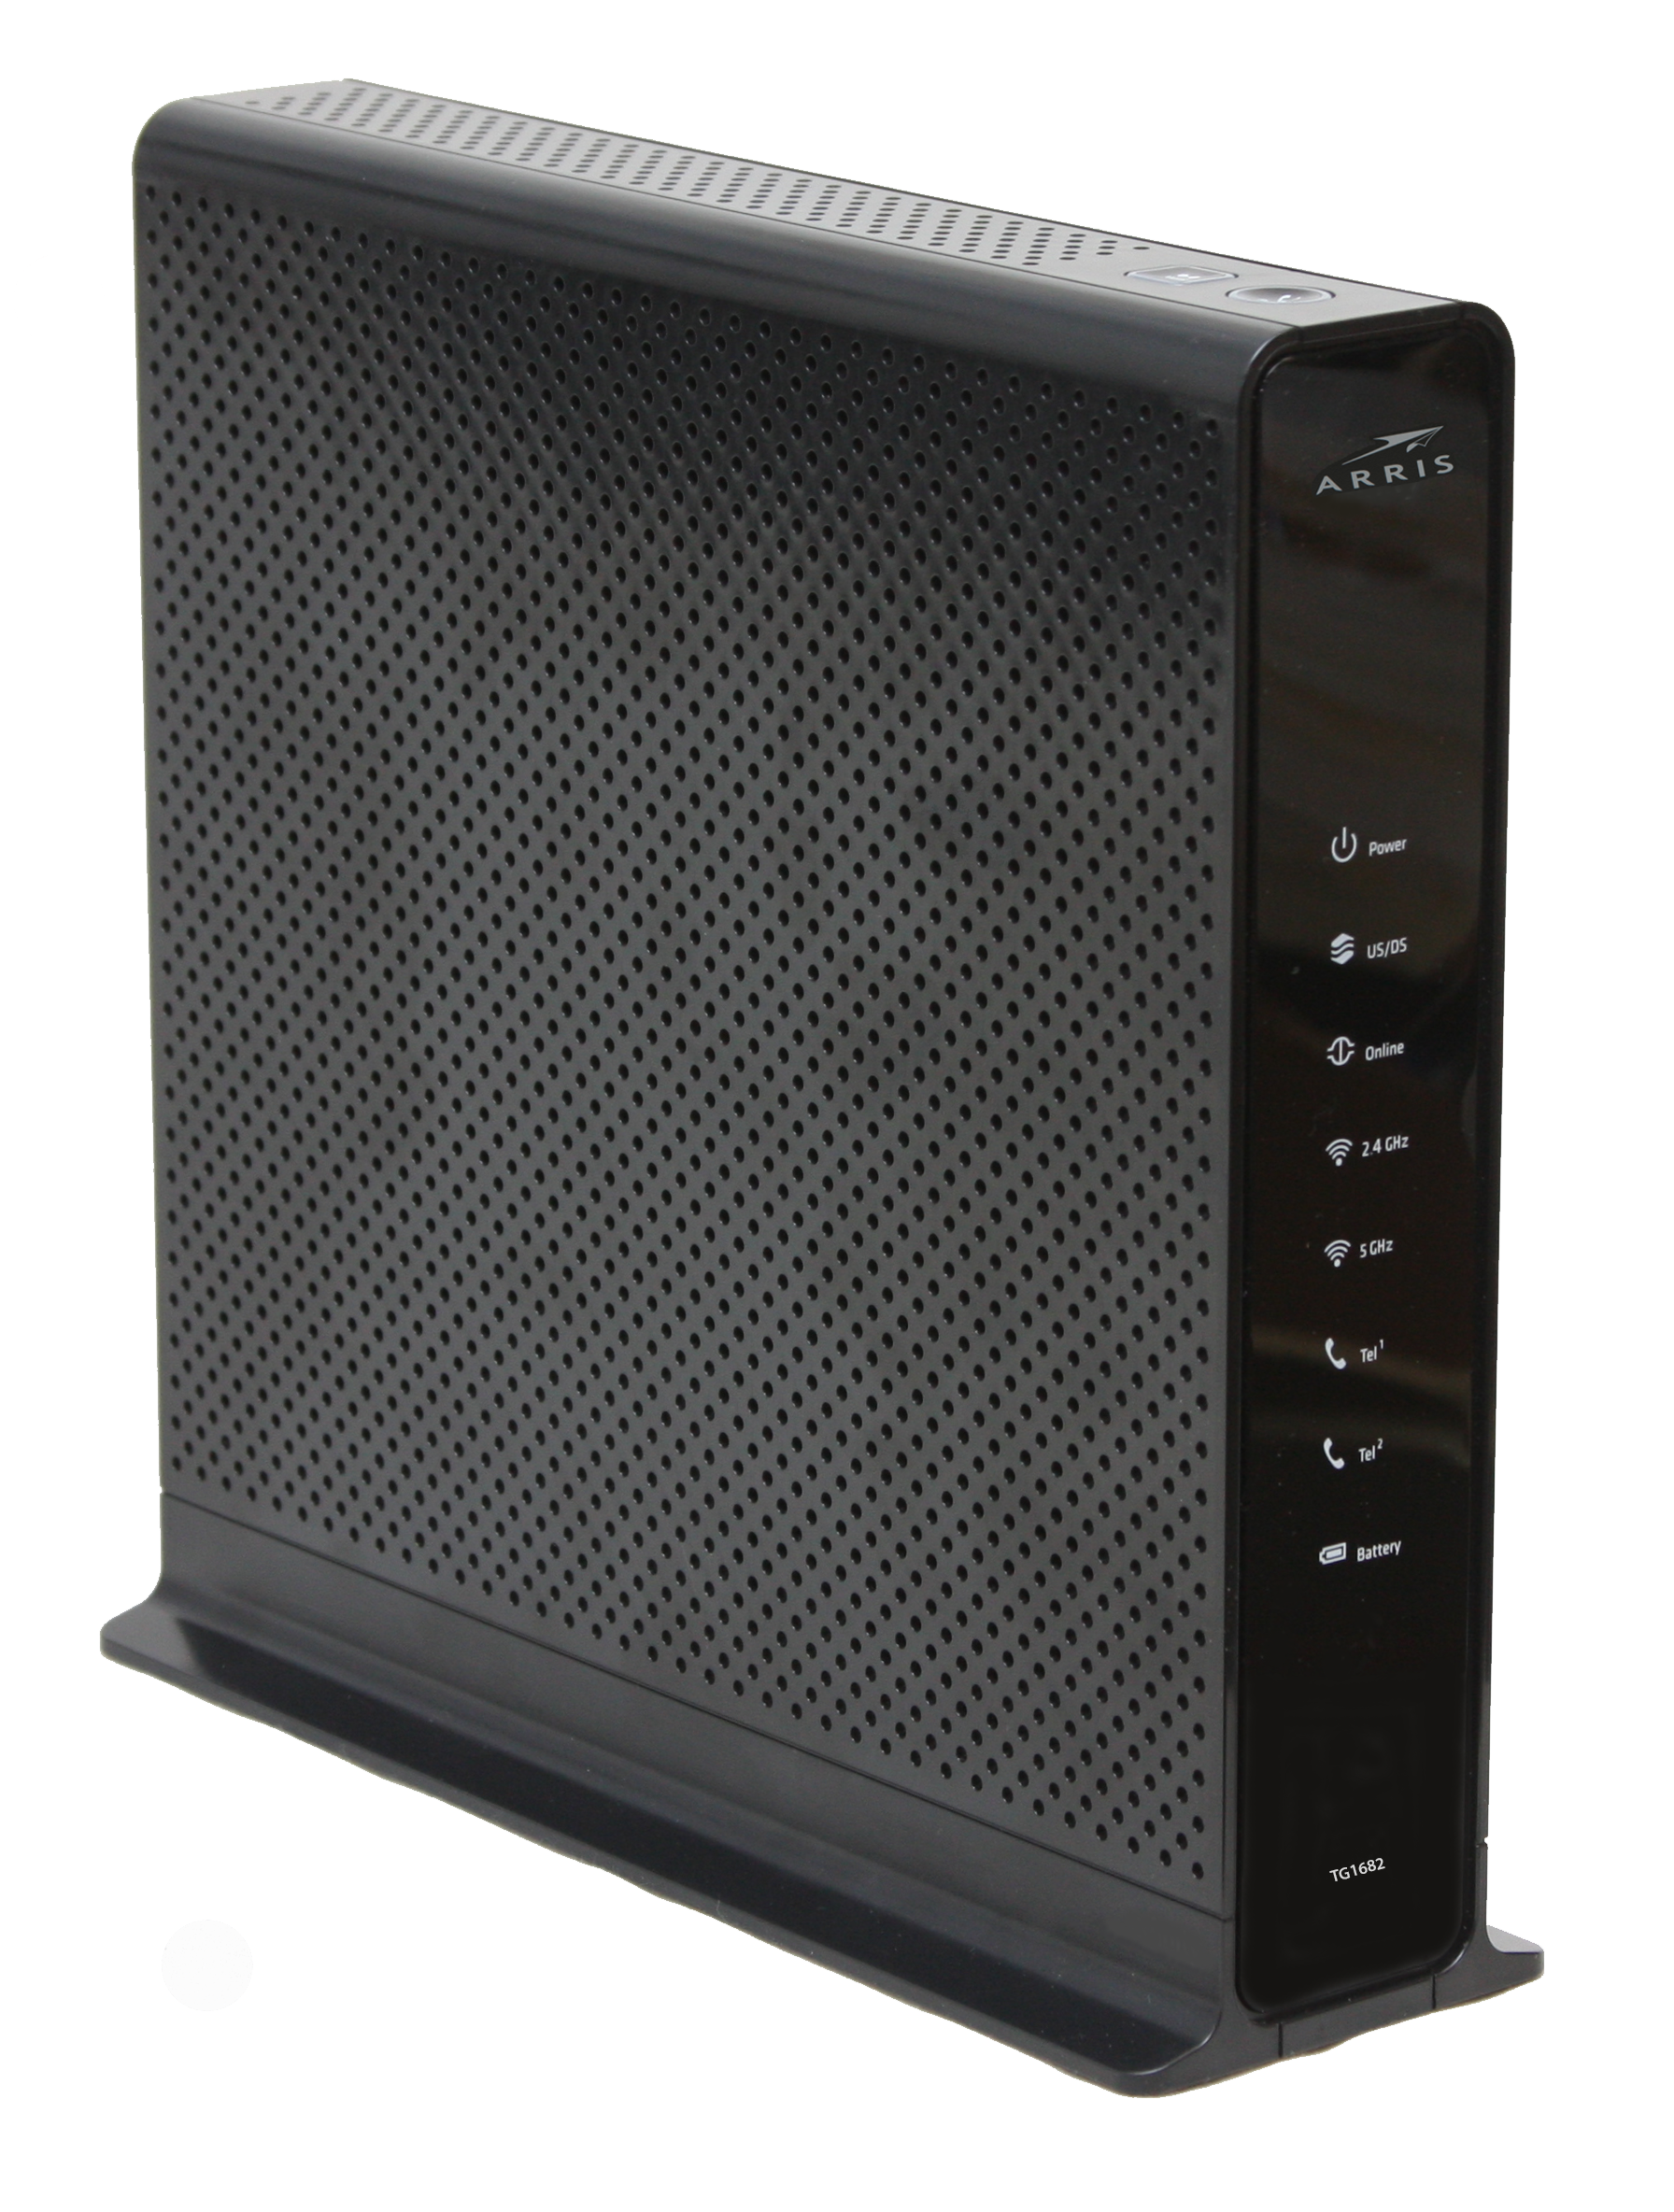 Comcast Arris Touchstone Gateway Devices are vulnerable! Here's the